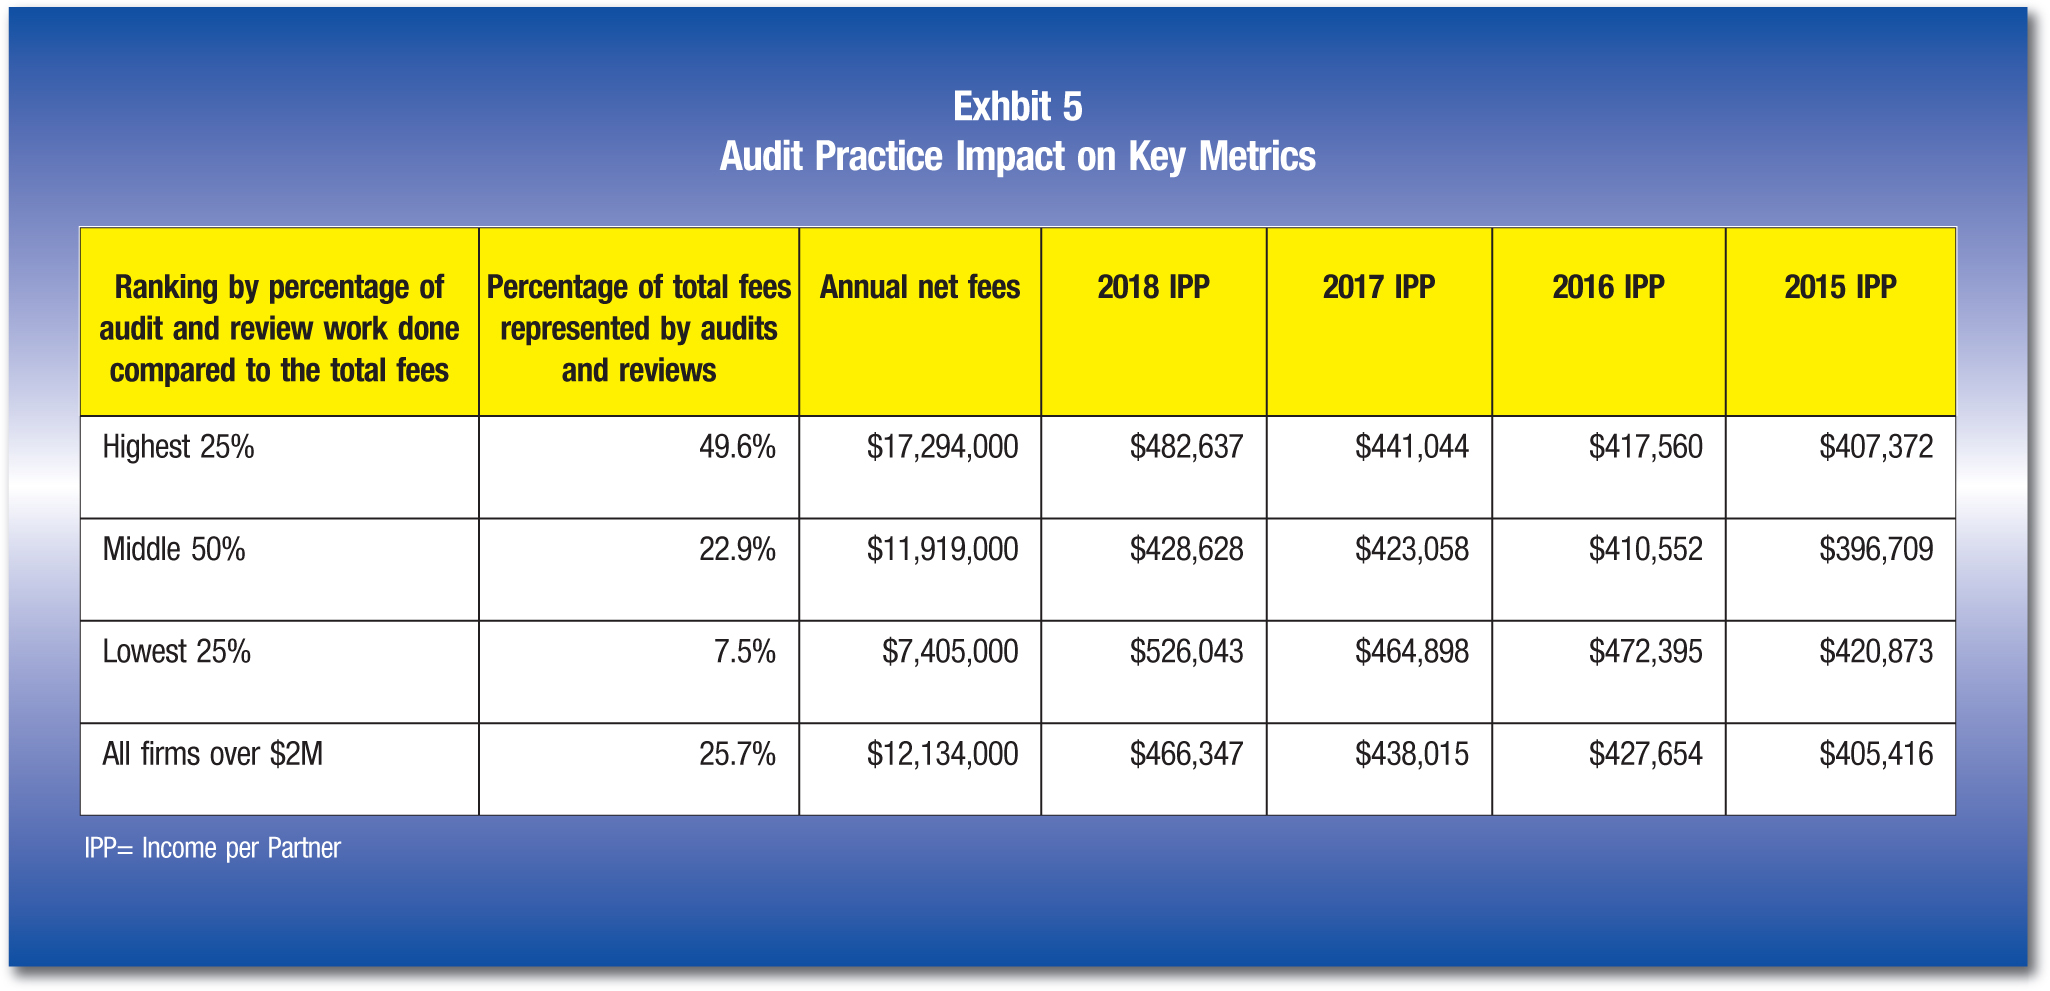 Ranking by percentage of audit and review work done compared to the total fees; Percentage of total fees represented by audits and reviews; Annual net fees; 2018 IPP' 2017 IPP; 2016 IPP; 2015 IPP Highest25%; 49.6%; $17,294,000; $482,637; $441,044; $417,560; $407,372 Middle50%; 22.9%; $11,919,000; $428,628; $423,058; $410,552; $396,709 Lowest25%; 7.5%; $7,405,000; $526,043; $464,898; $472,395; $420,873 Allfirms over; $2M 25.7%; $12,134,000; $466,347; $438,015; $427,654; $405,416 IPP= Income per Partner